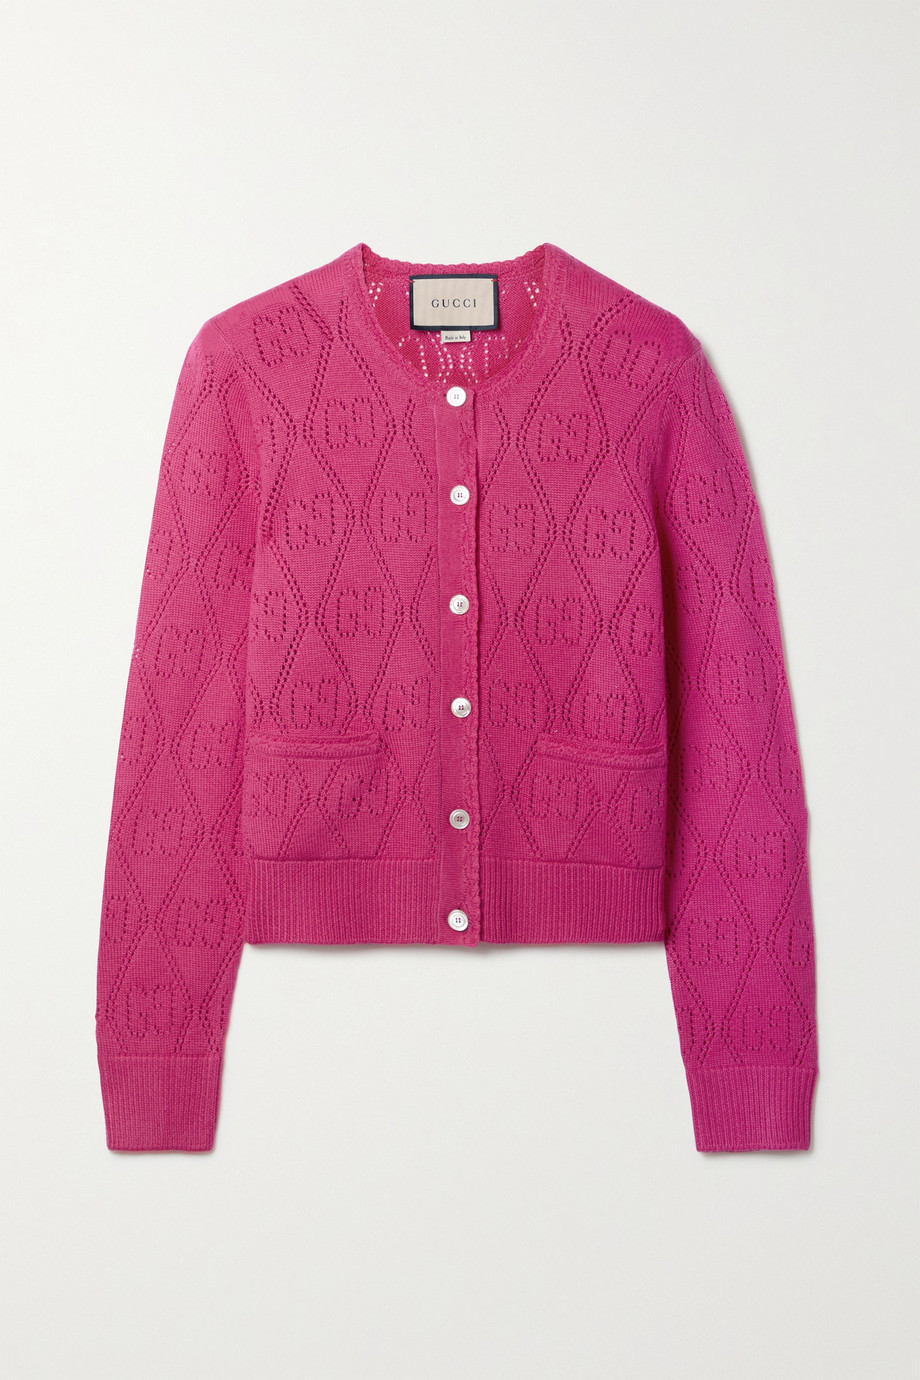 GUCCI Pointelle-knit wool cardigan